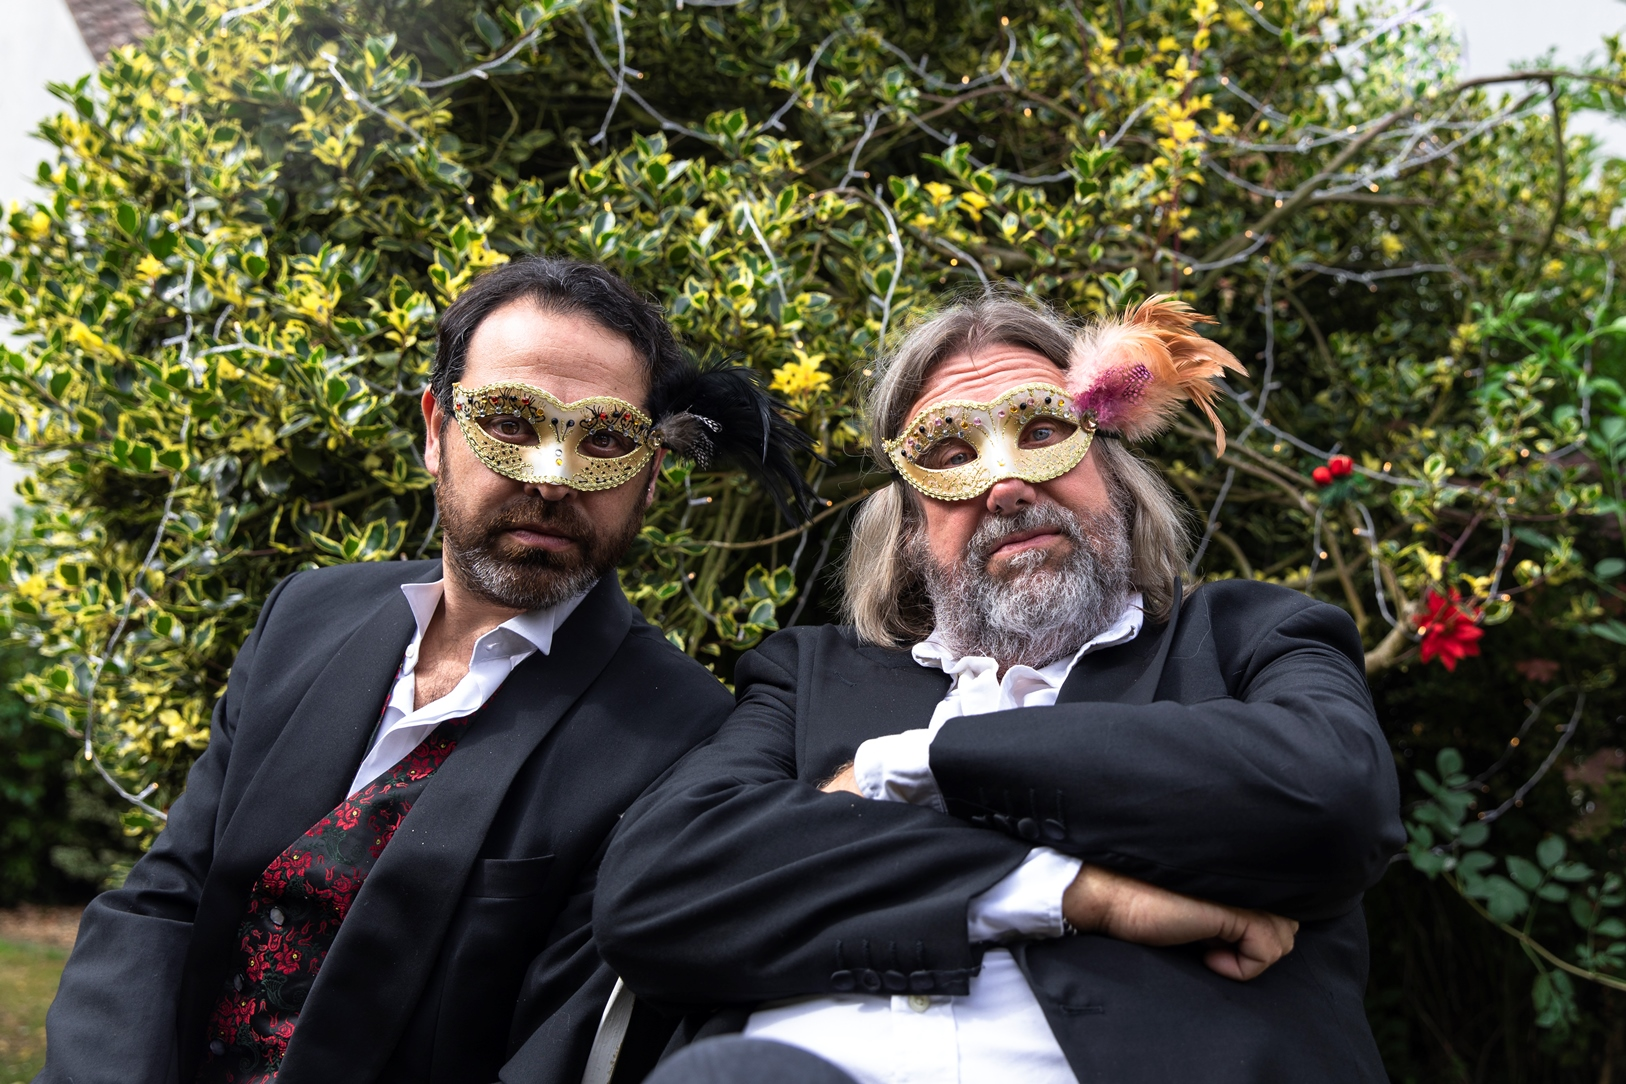 Belshazzar's Feast 'Two Wise Men;' Tour at The David Hall South Petherton